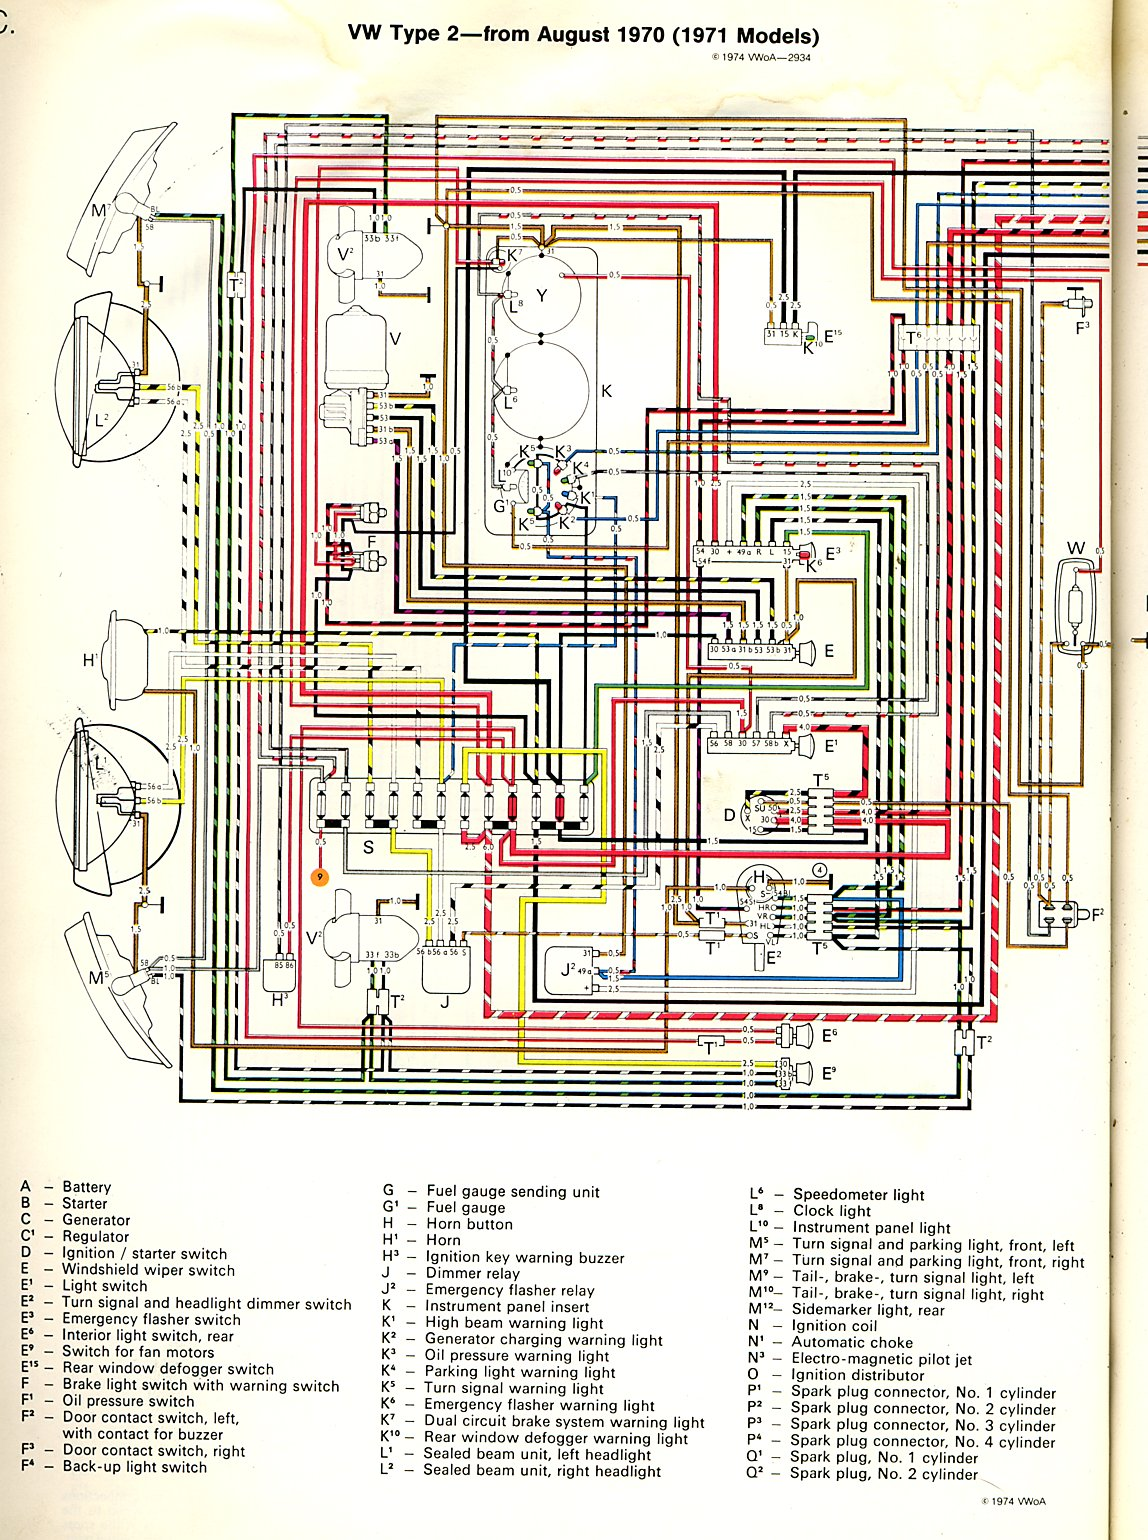 baybus_71a thesamba com type 2 wiring diagrams 73 corvette wiring diagram pdf at honlapkeszites.co